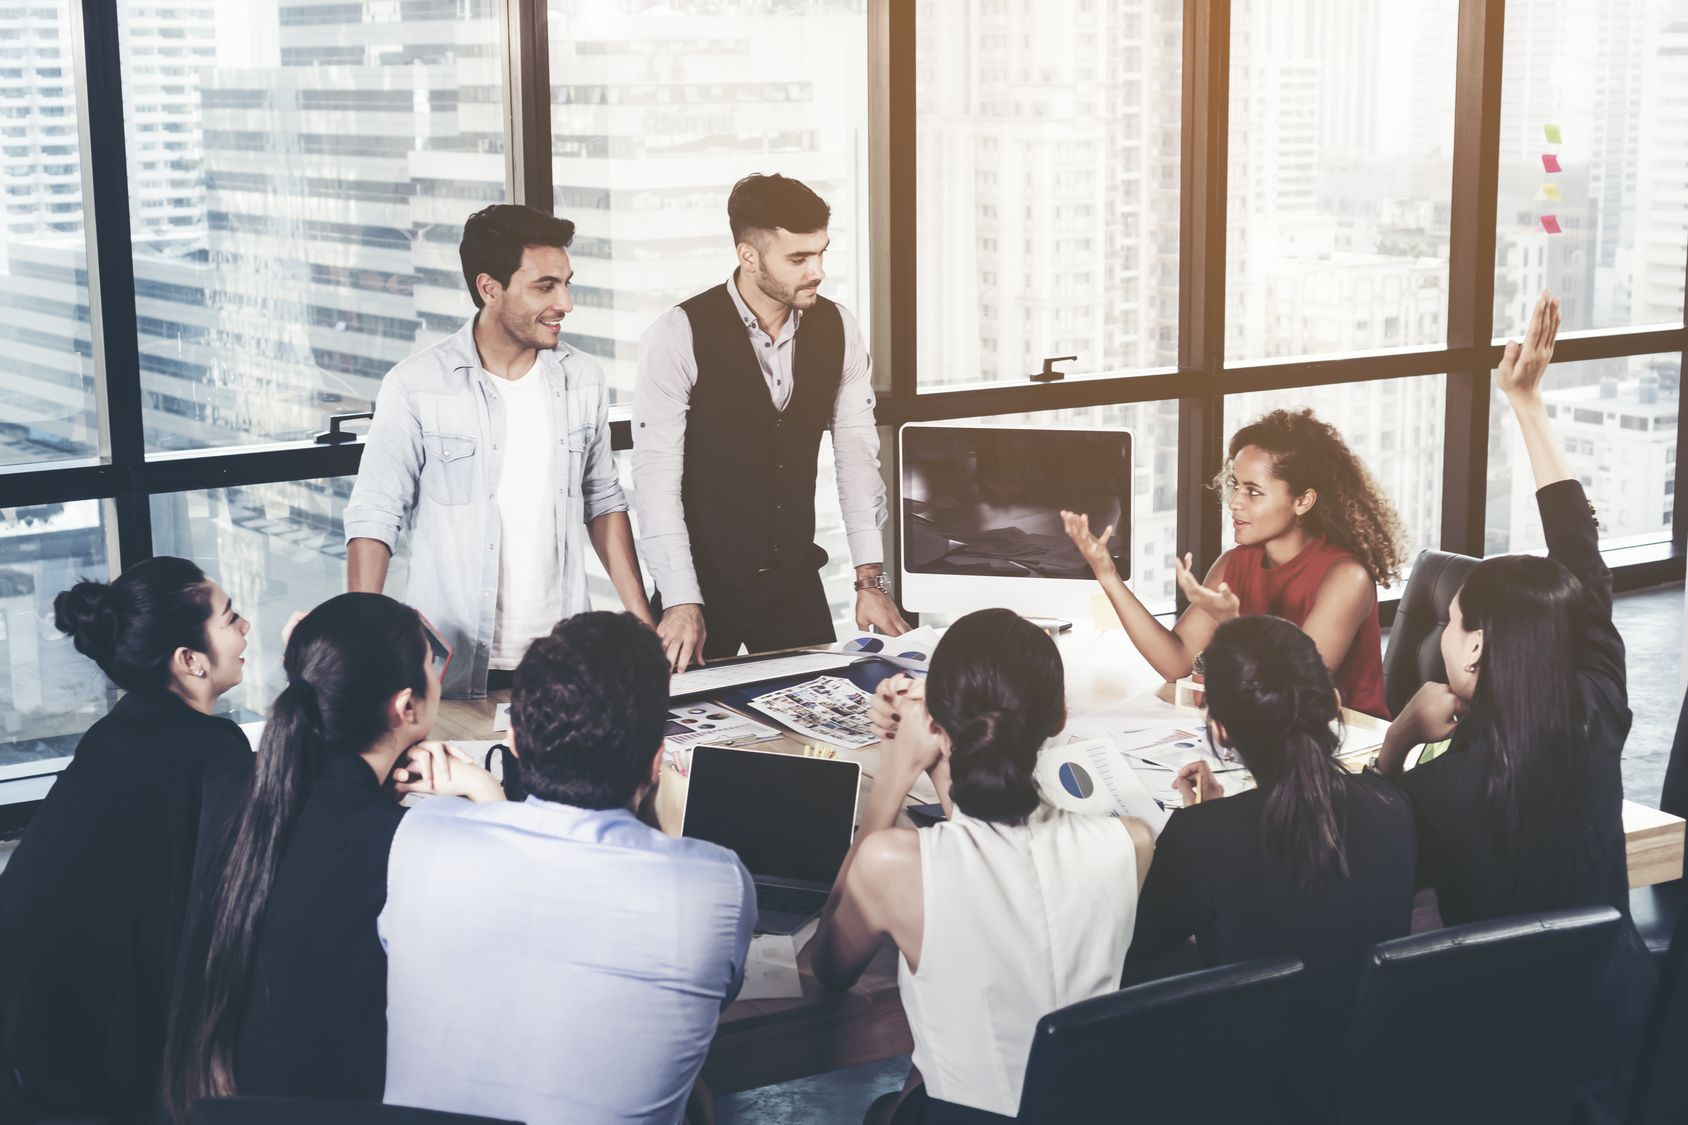 Successful Team Leader And Business Owner Leading Informal In House Business Meeting Business People Working On Laptops In Foreground And Glass Reflections Business And Entrepreneurship Concept Traveldoo